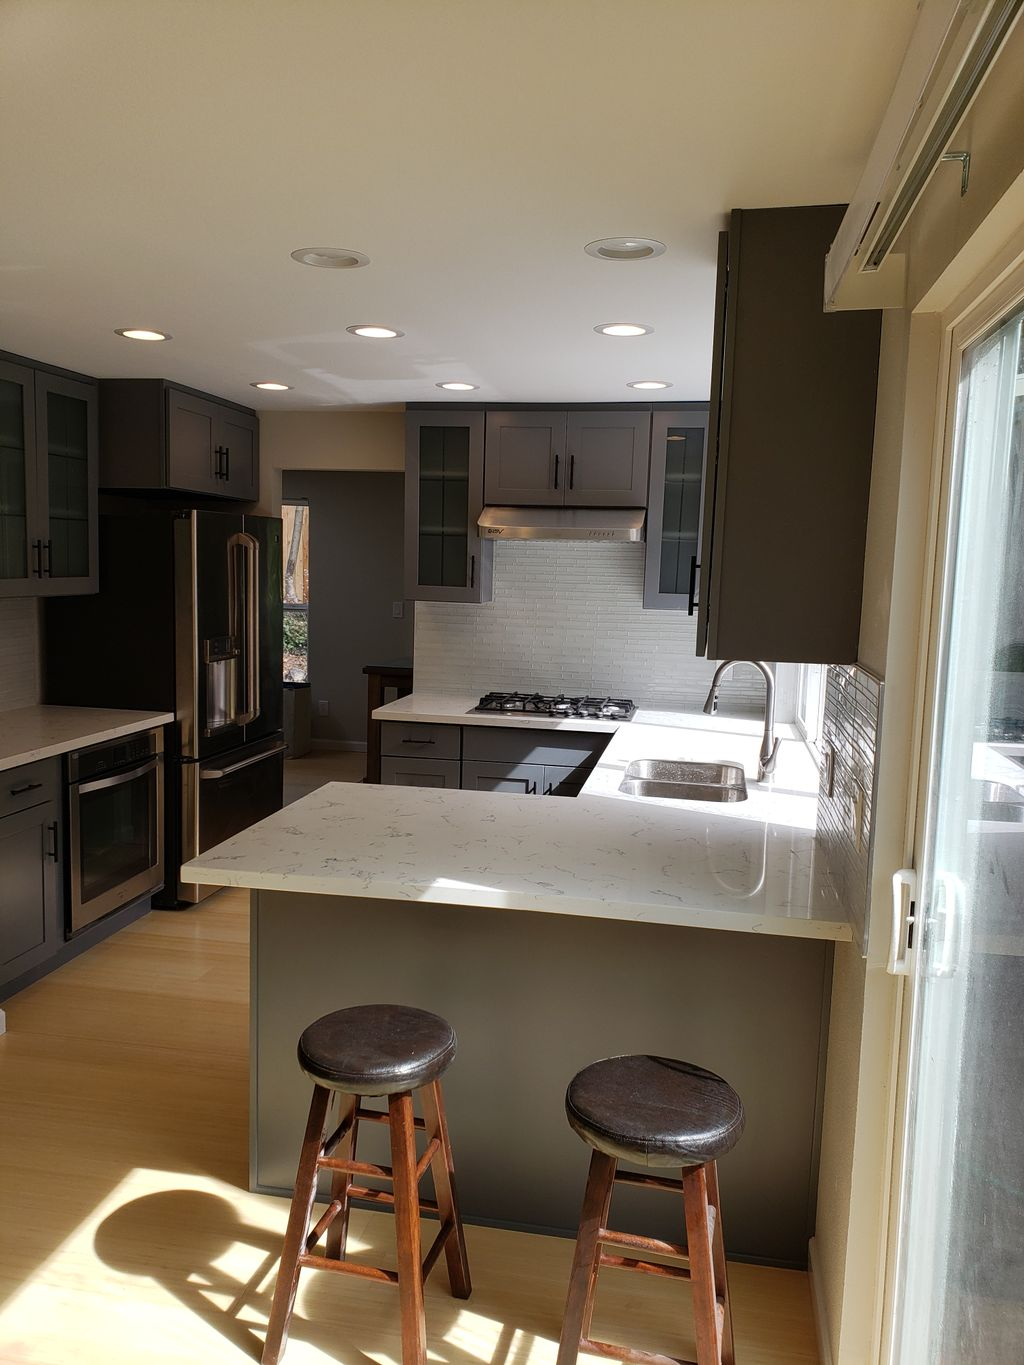 Kitchen and 2 bathrooms remodel